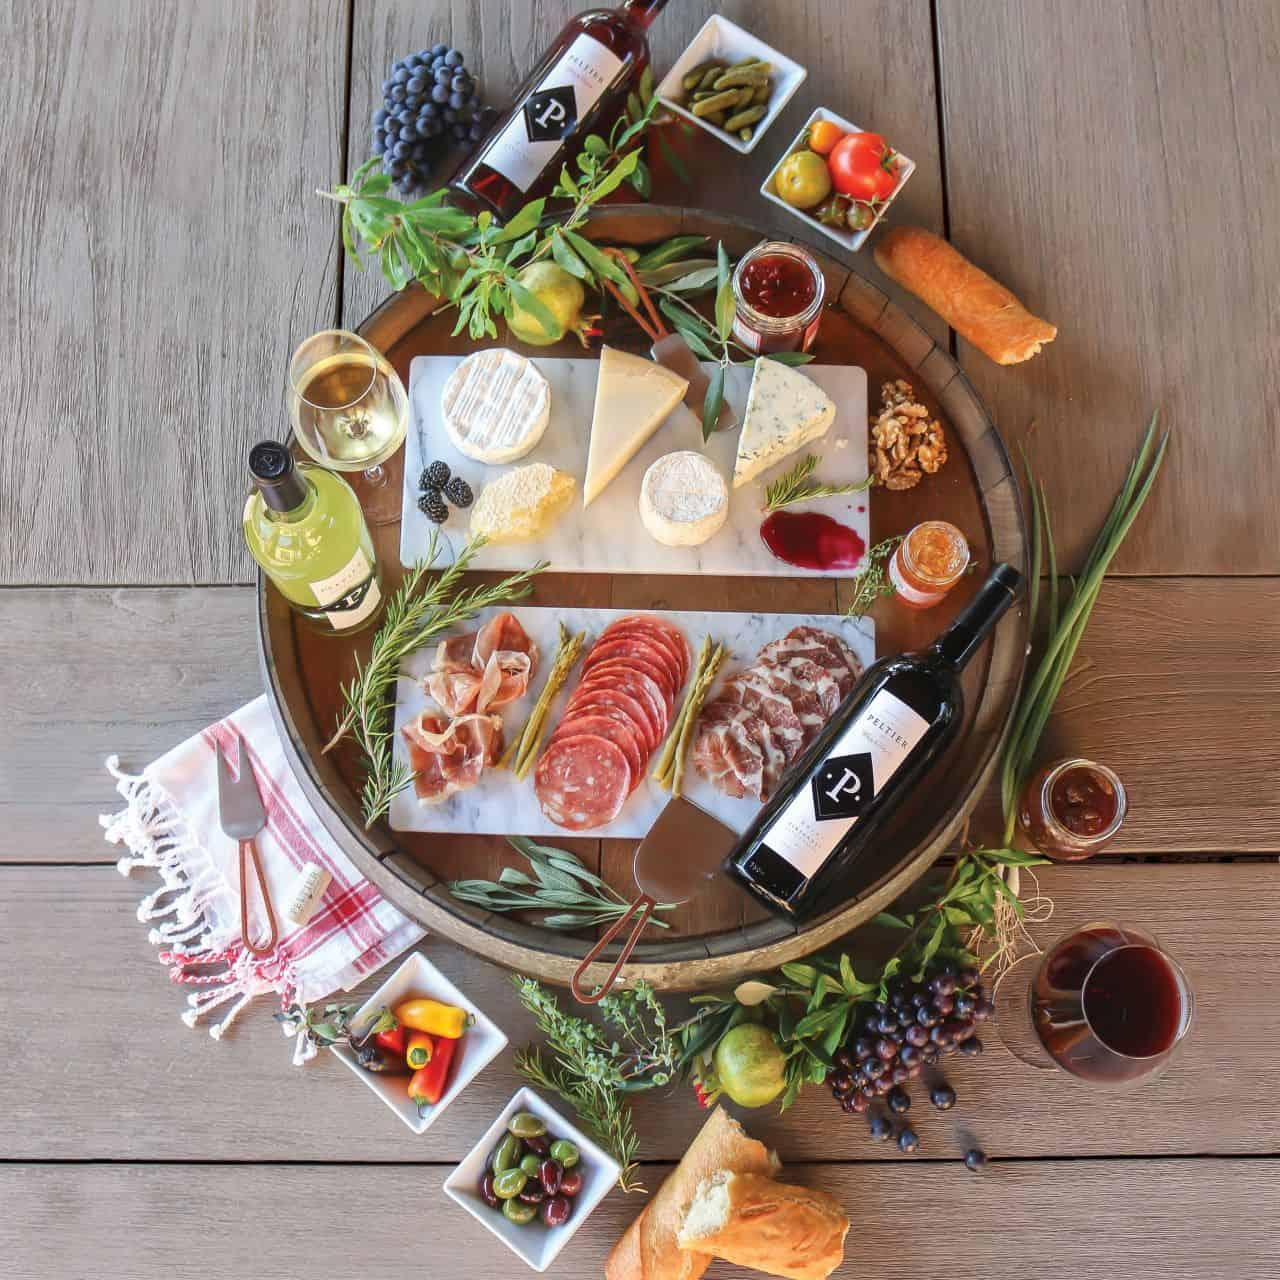 charcuterie board from above with meats, cheeses and wine